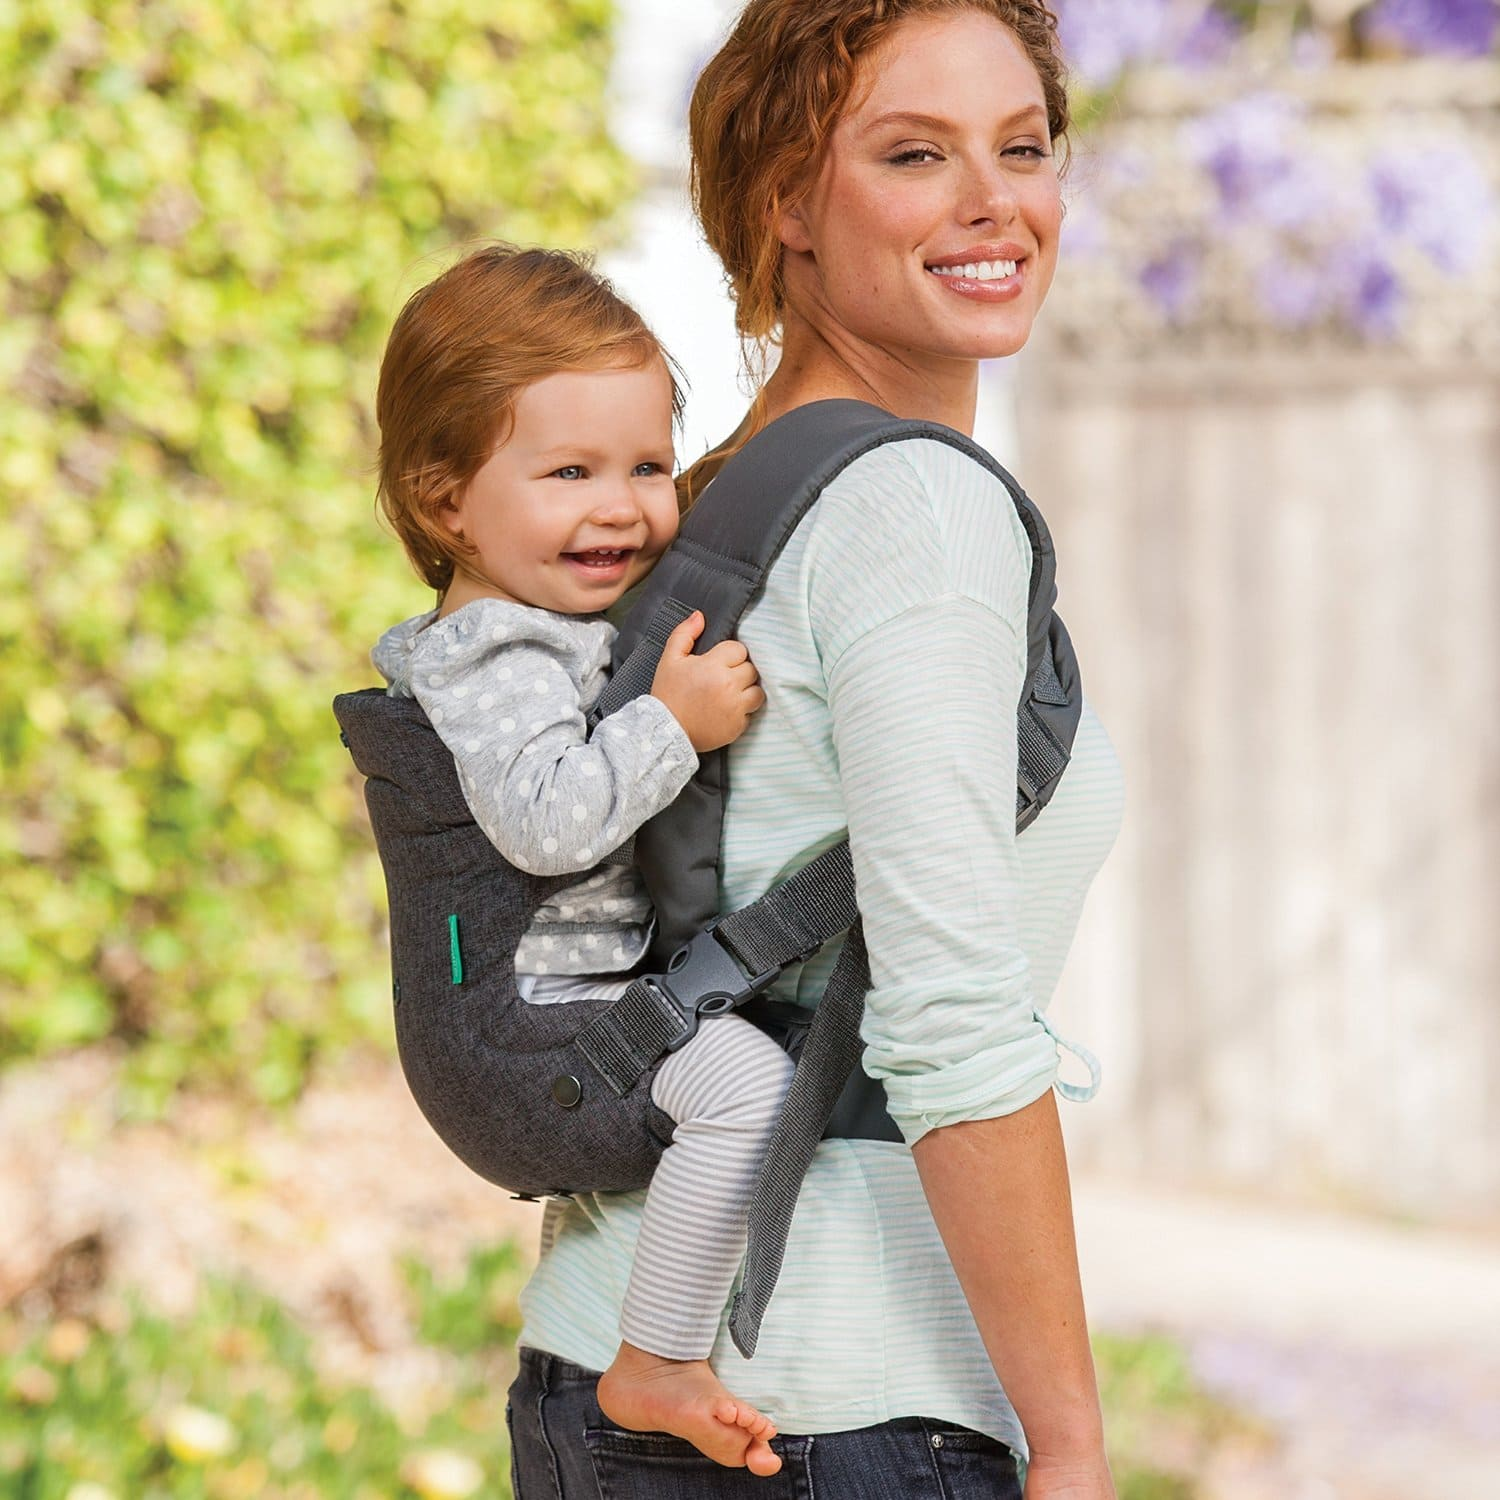 Infantino Flip Advanced 4-in-1 Convertible Carrier, Light Grey $17.88 @Amazon +FS With prime